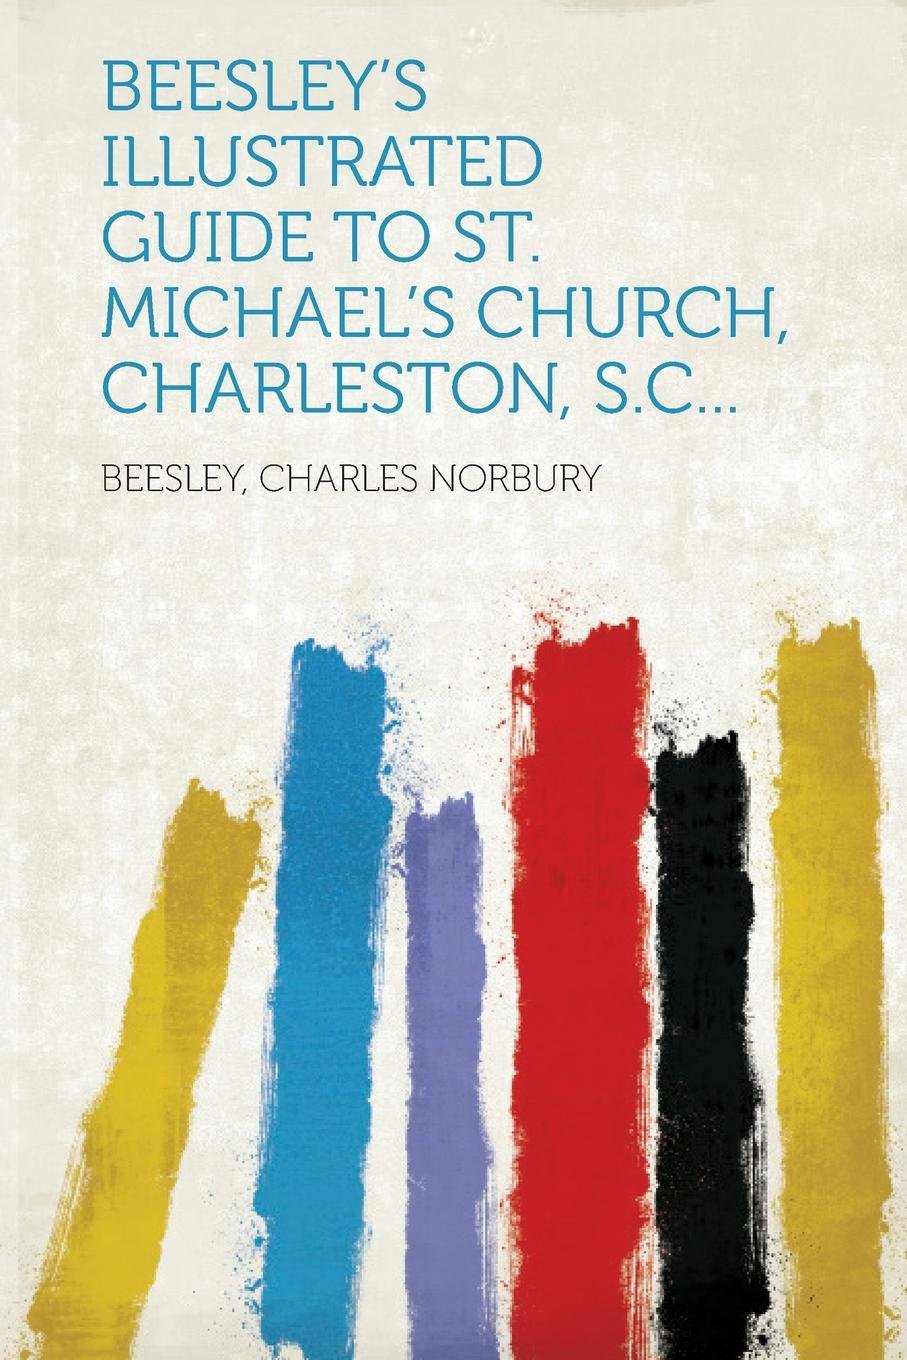 Beesley's Illustrated Guide to St. Michael's Church, Charleston, S.C... pdf